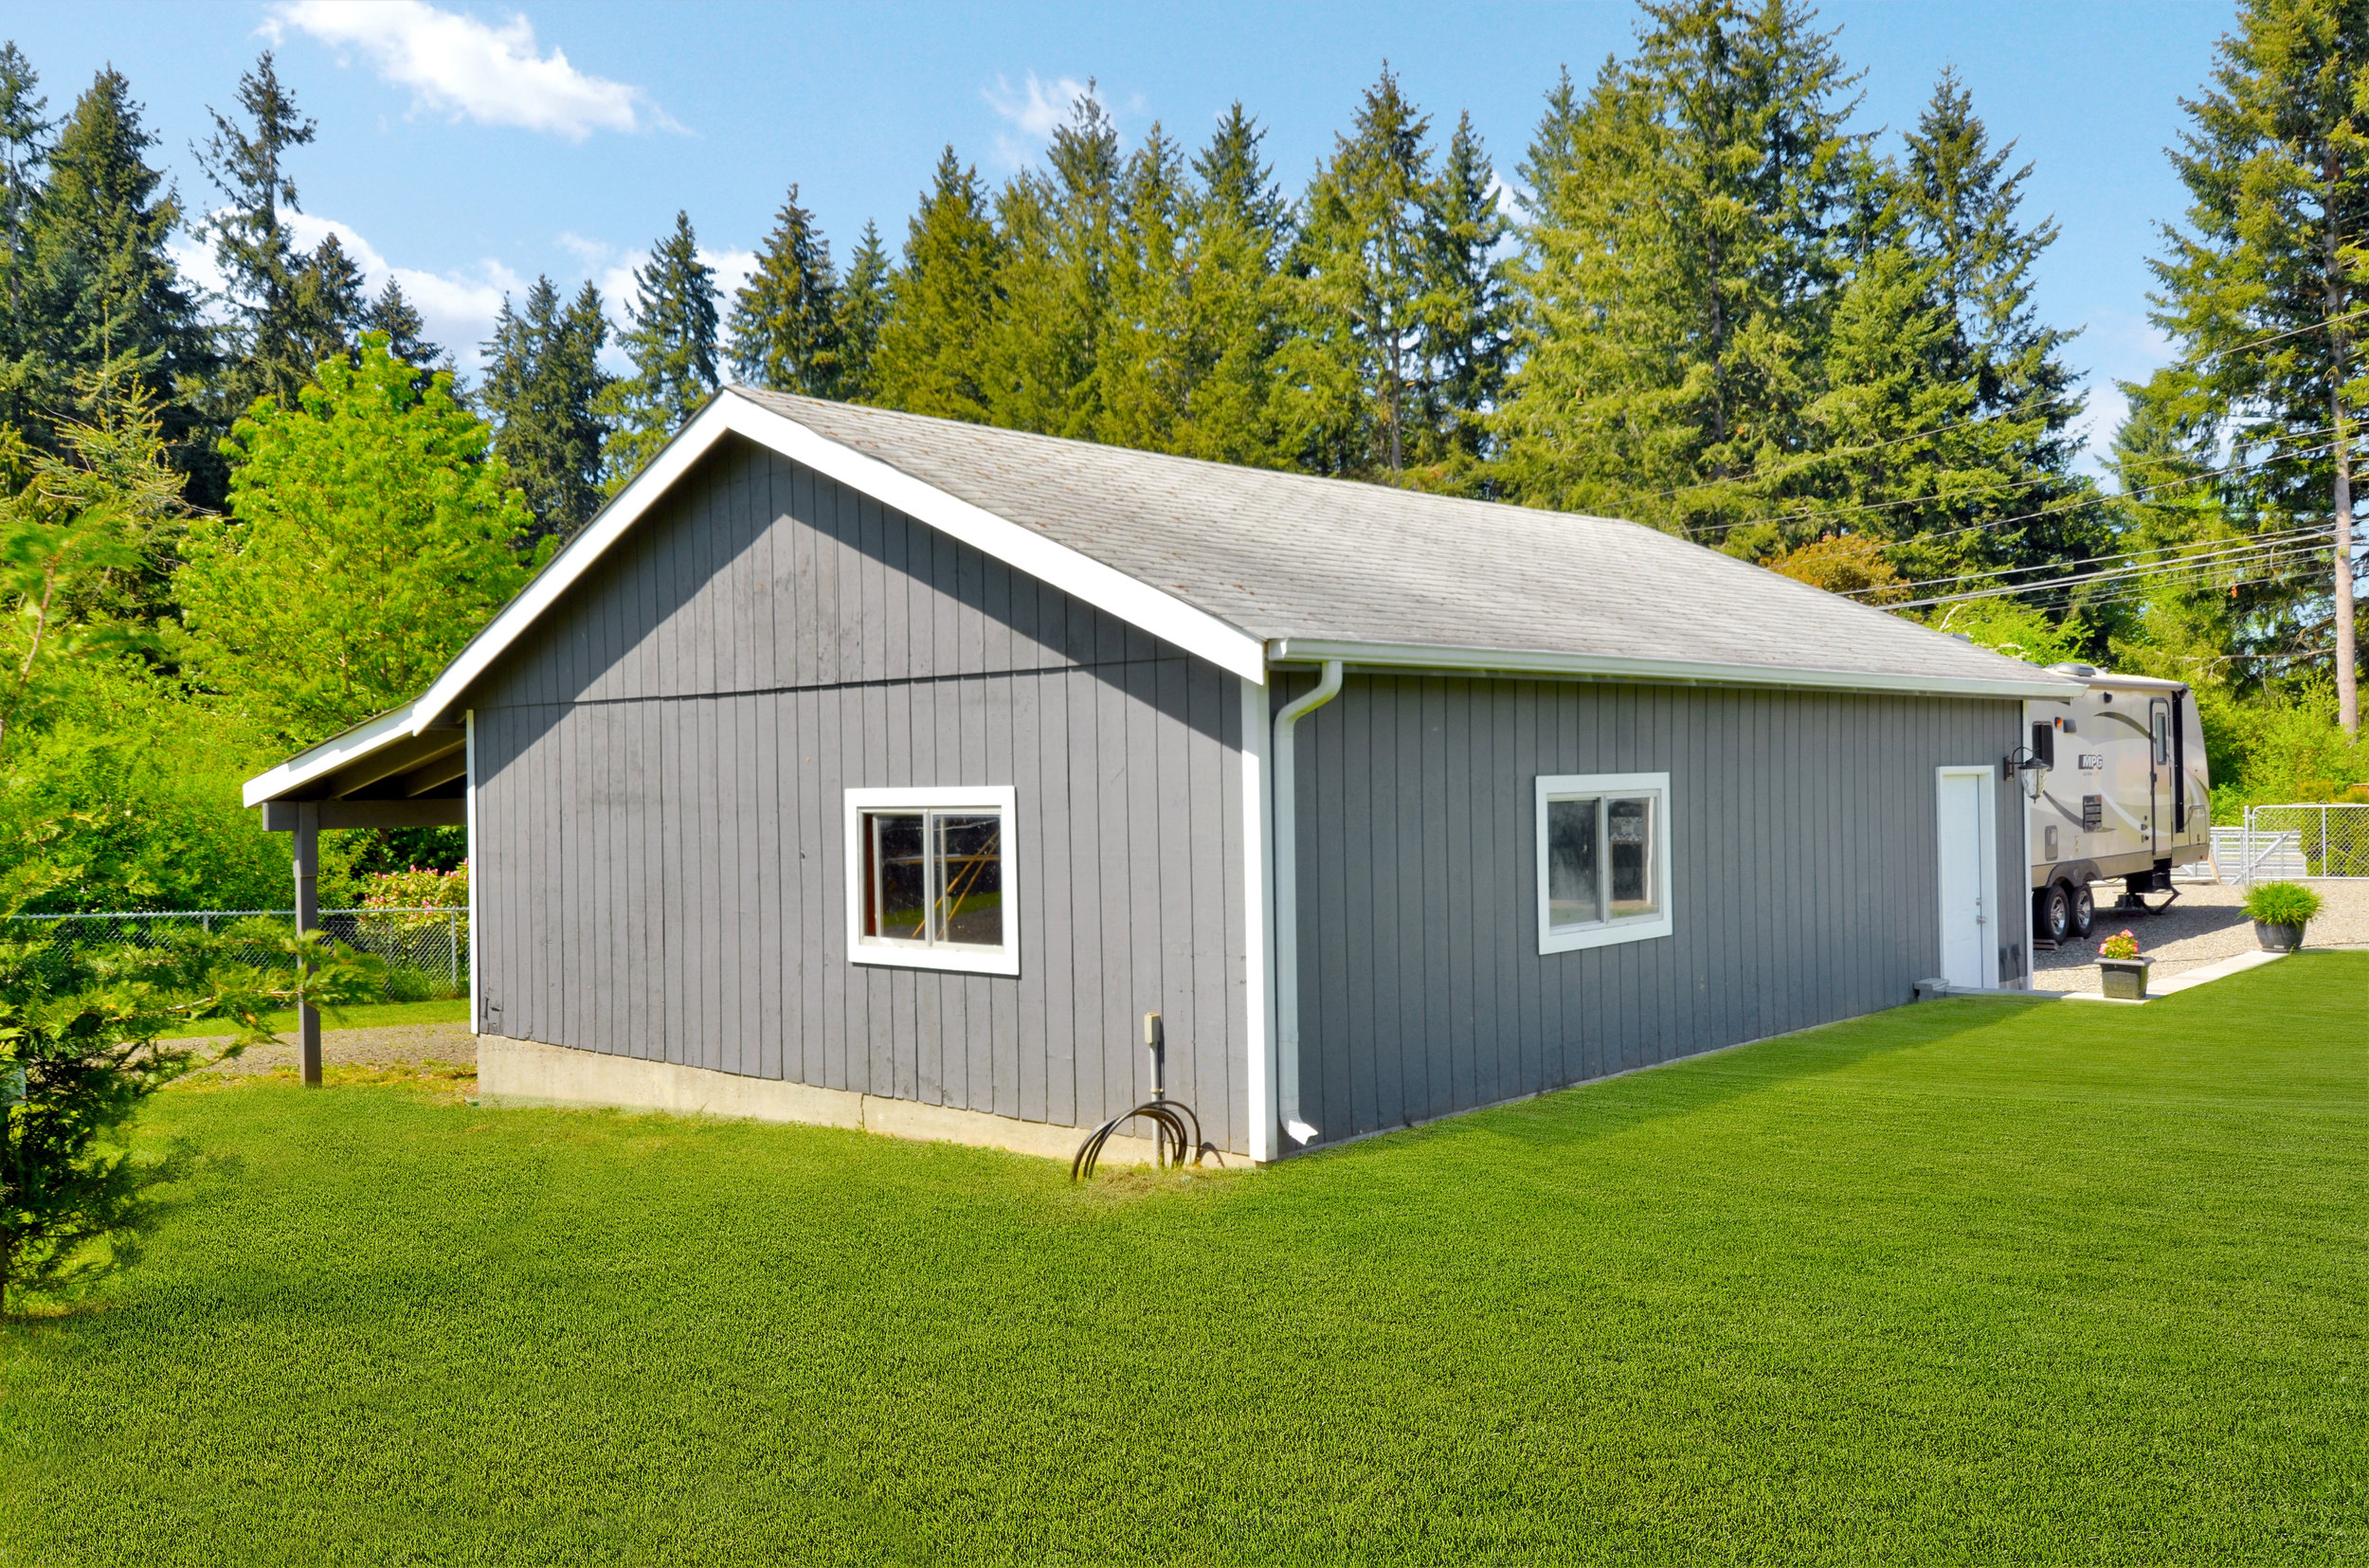 The detached 24 x 30 garage has a new bay door, a new man door, and an insulated ground floor, with a lean-to and upper level for additional storage.